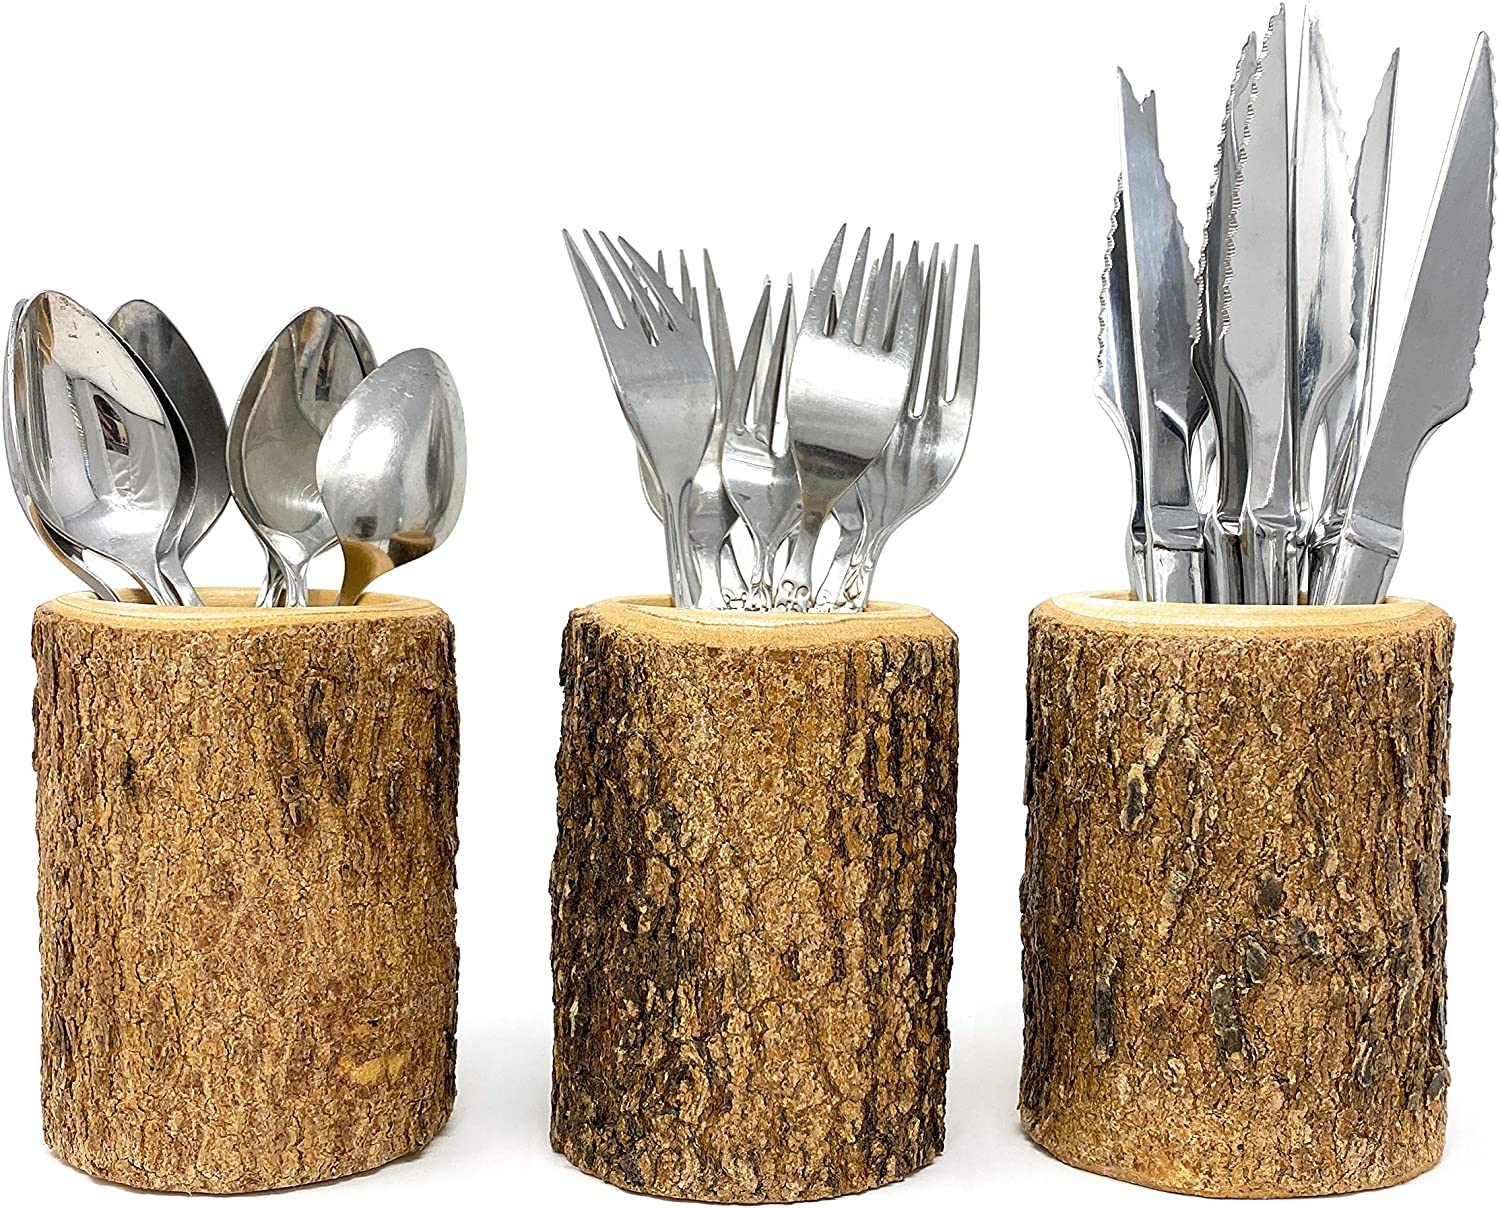 Silverware Holder in Natural Wood Bark Handcrafted Utensil Flatware Organizer for Rustic Kitchen Farmhouse Decor and Restaurant Tables (3 Cups)